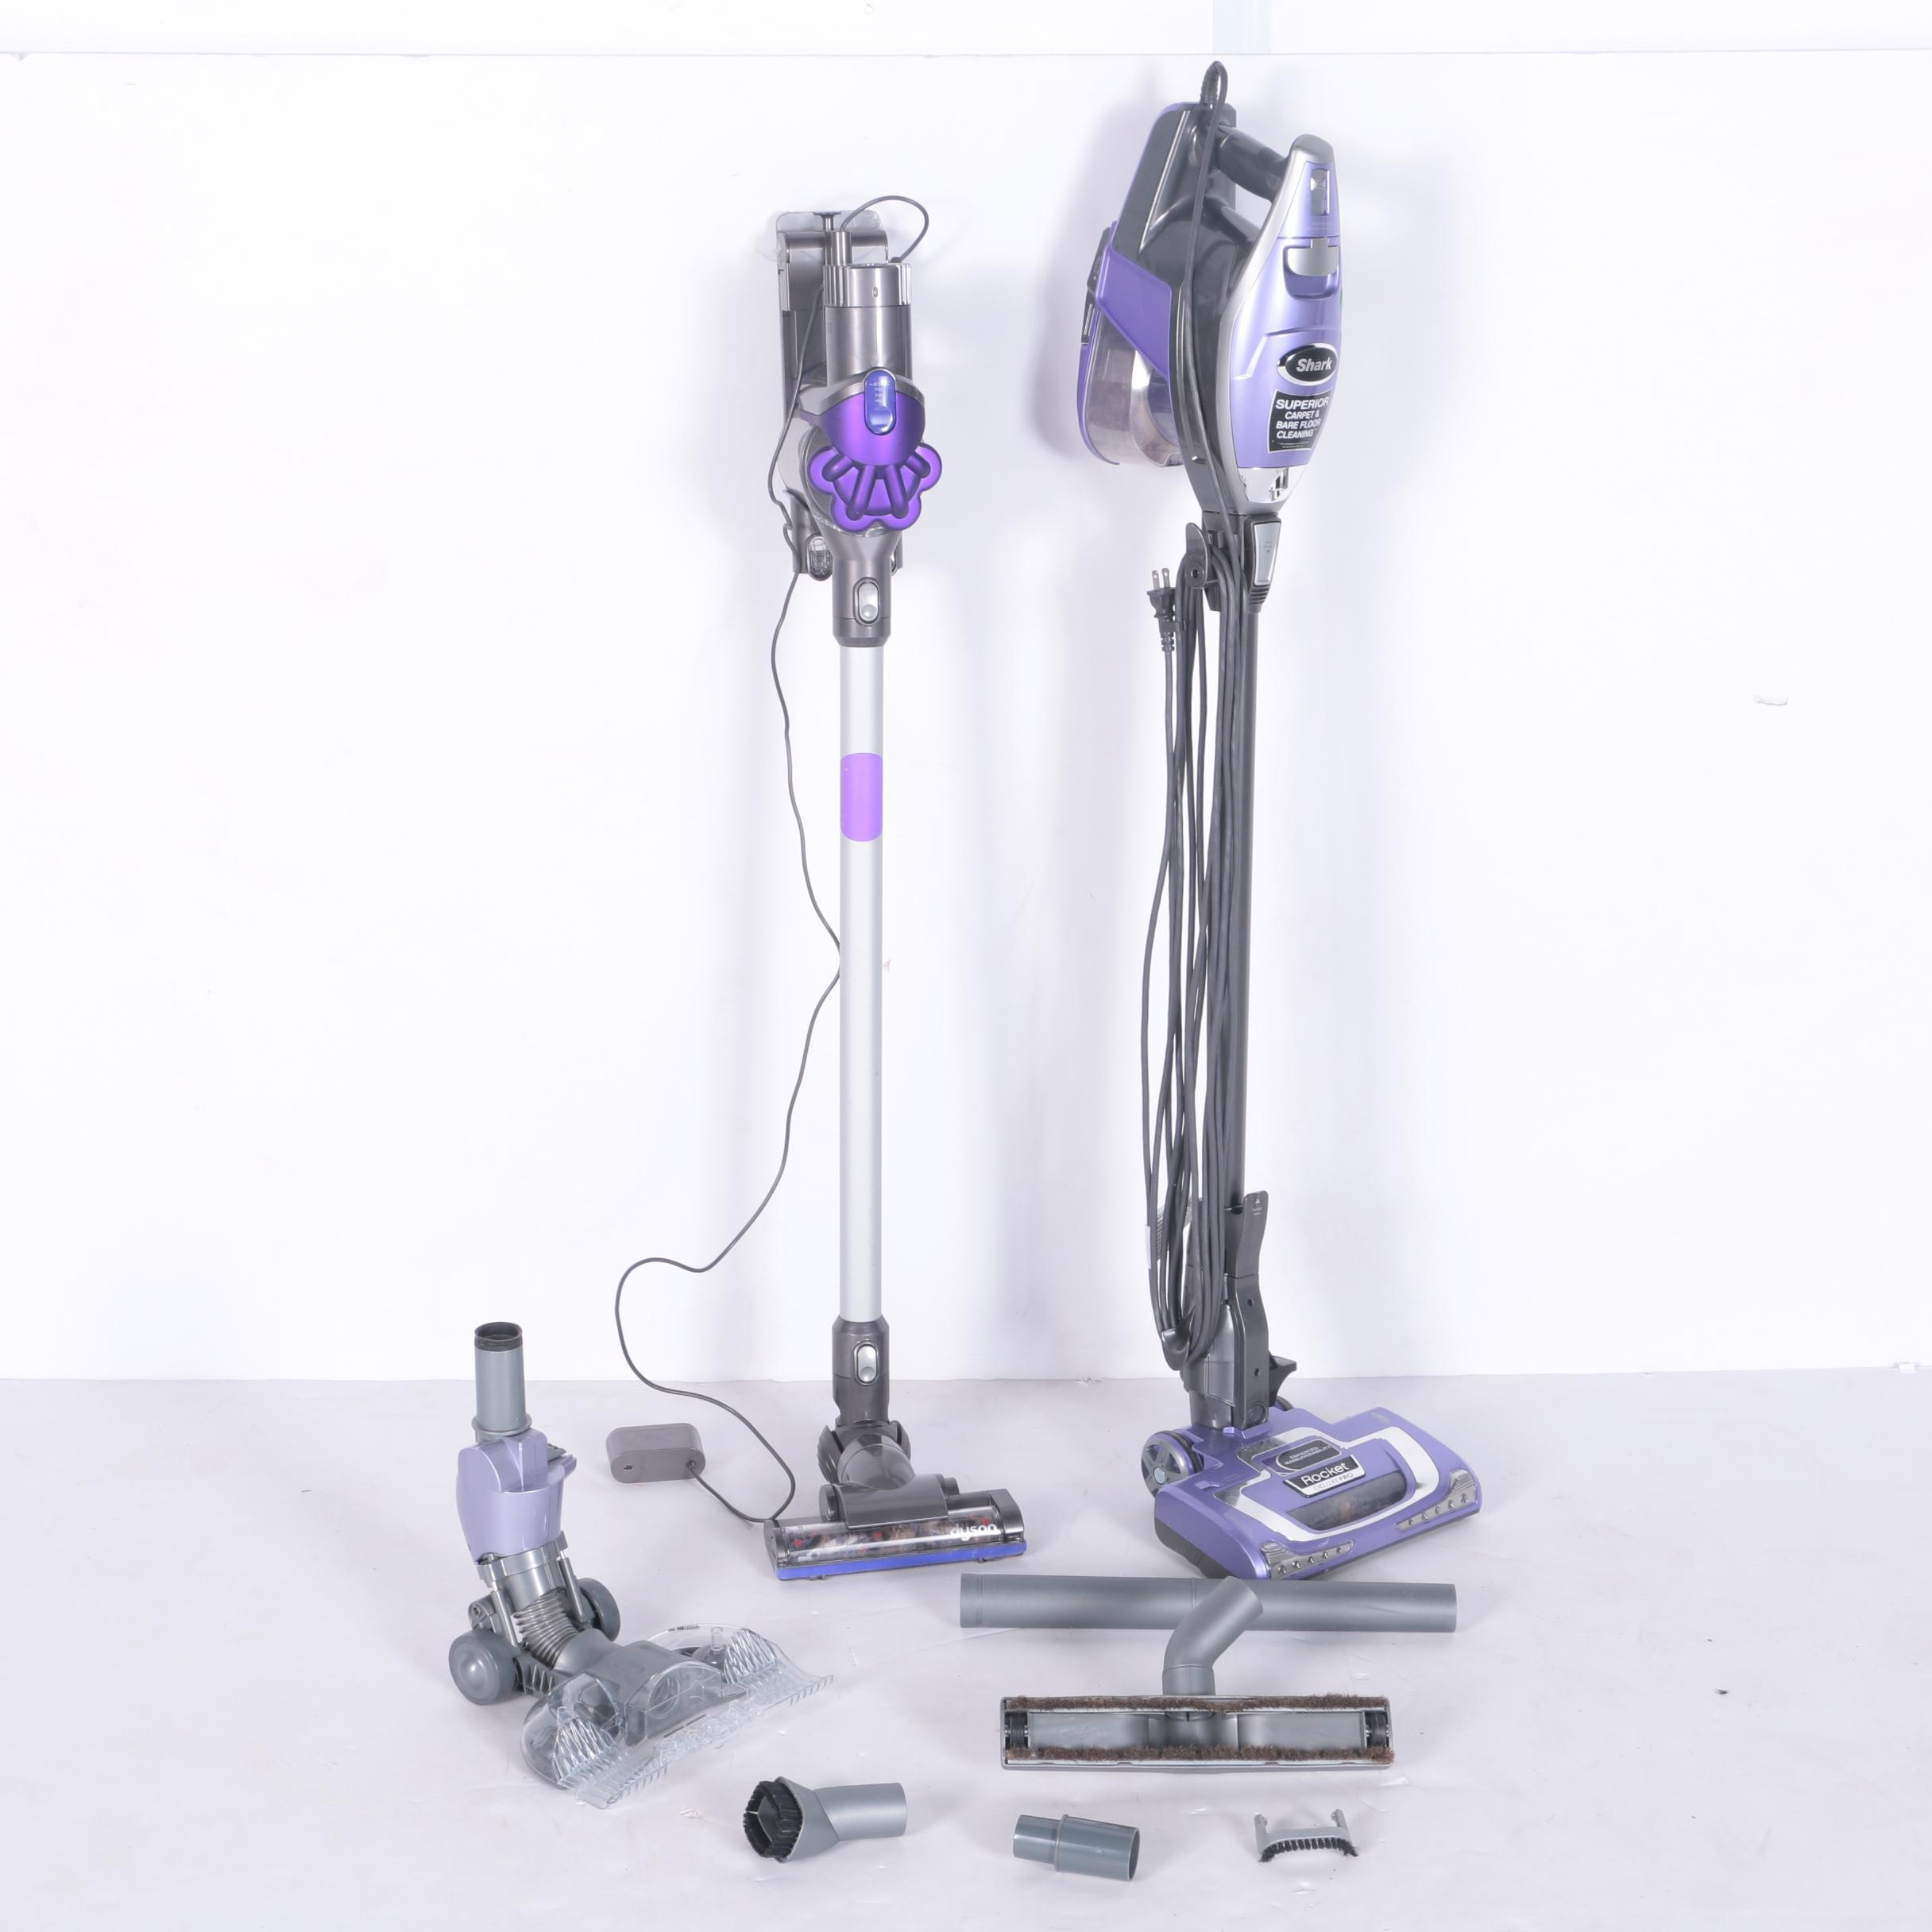 Shark and Dyson Vacuum Cleaners